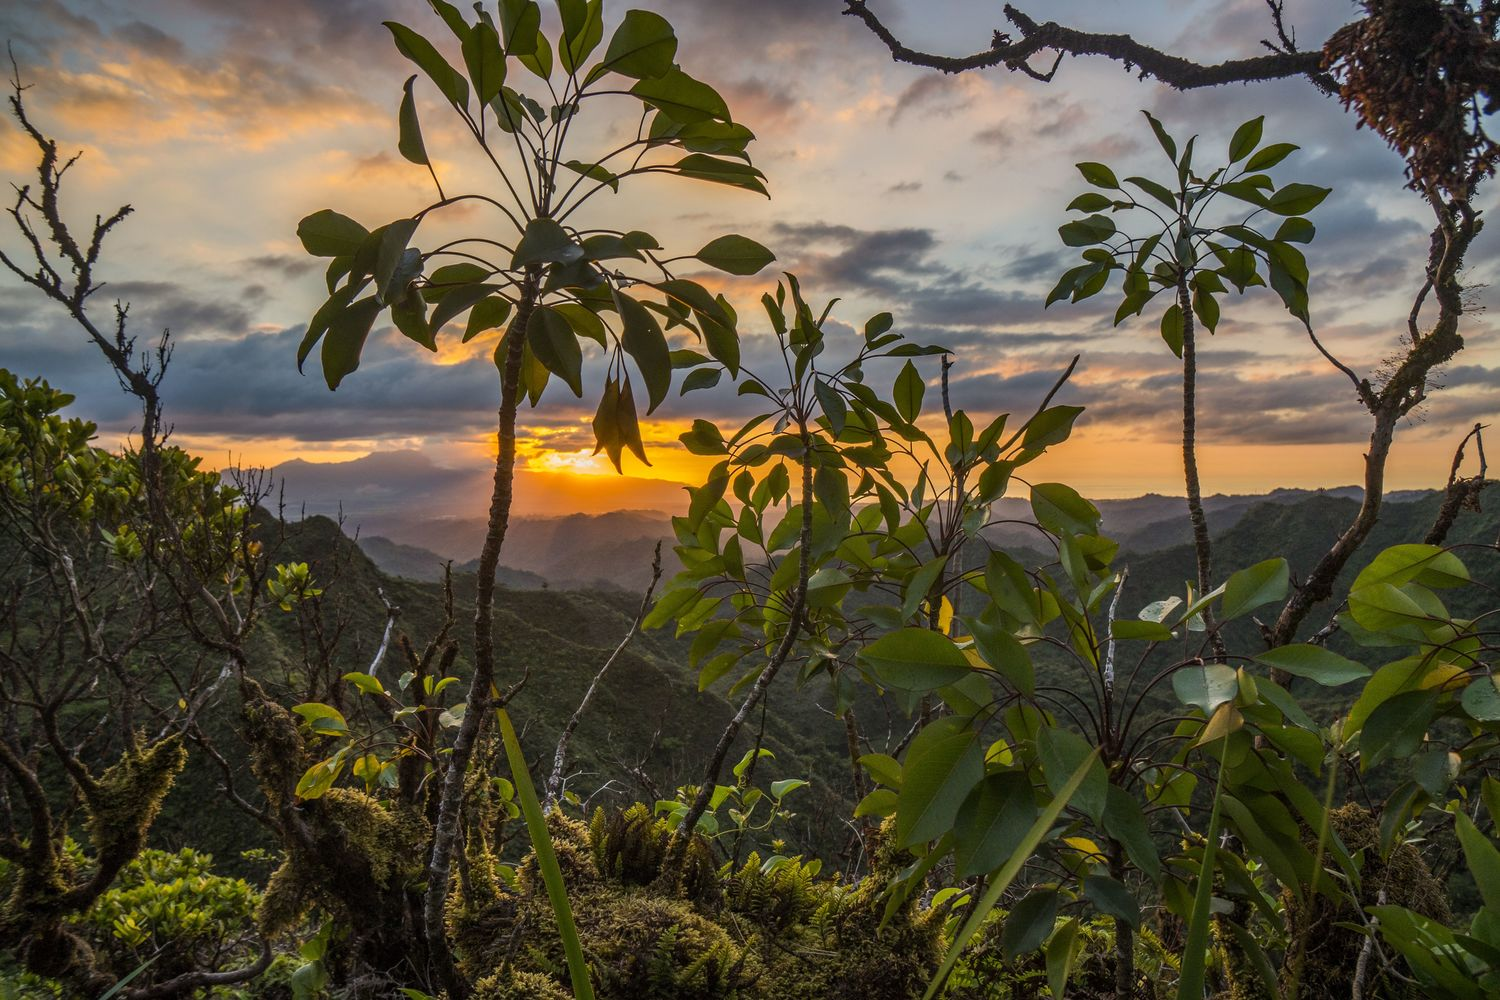 Ko'olau Mountain range on Oahu - the third largest of the Hawaiian Islands. Researchers investigated the effects on biodiversity of introduced species and island age.